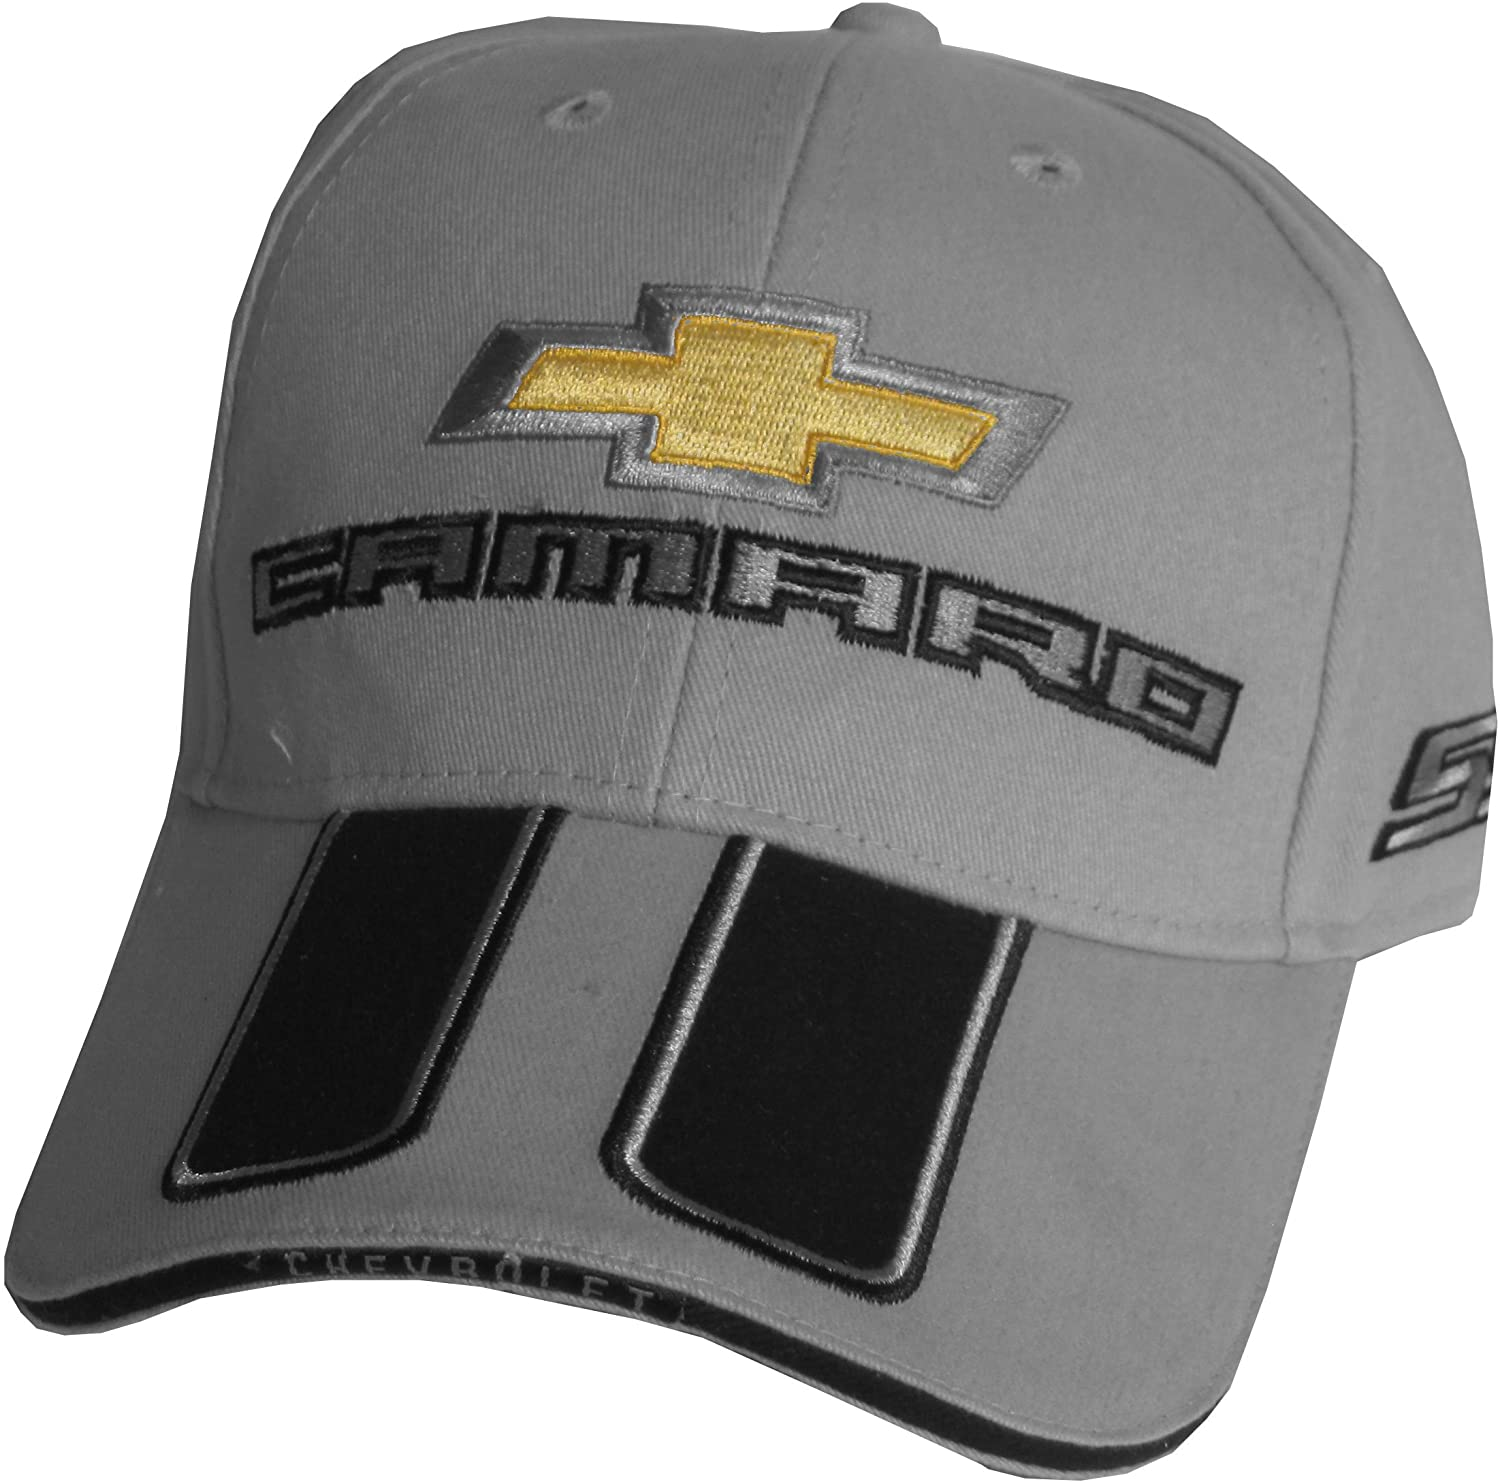 Camaro Hat SS Bowtie Cap Gray - Bundle with Driving Style Decal